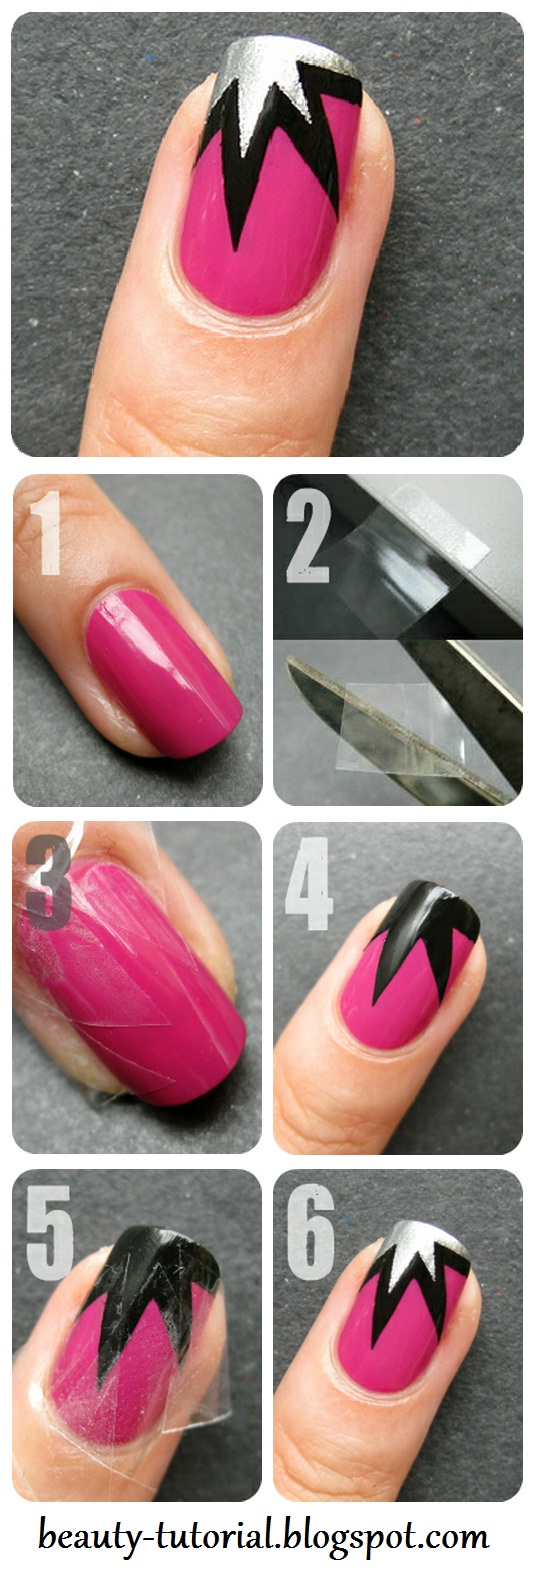 DIY Easy Tape Nail Art Designs